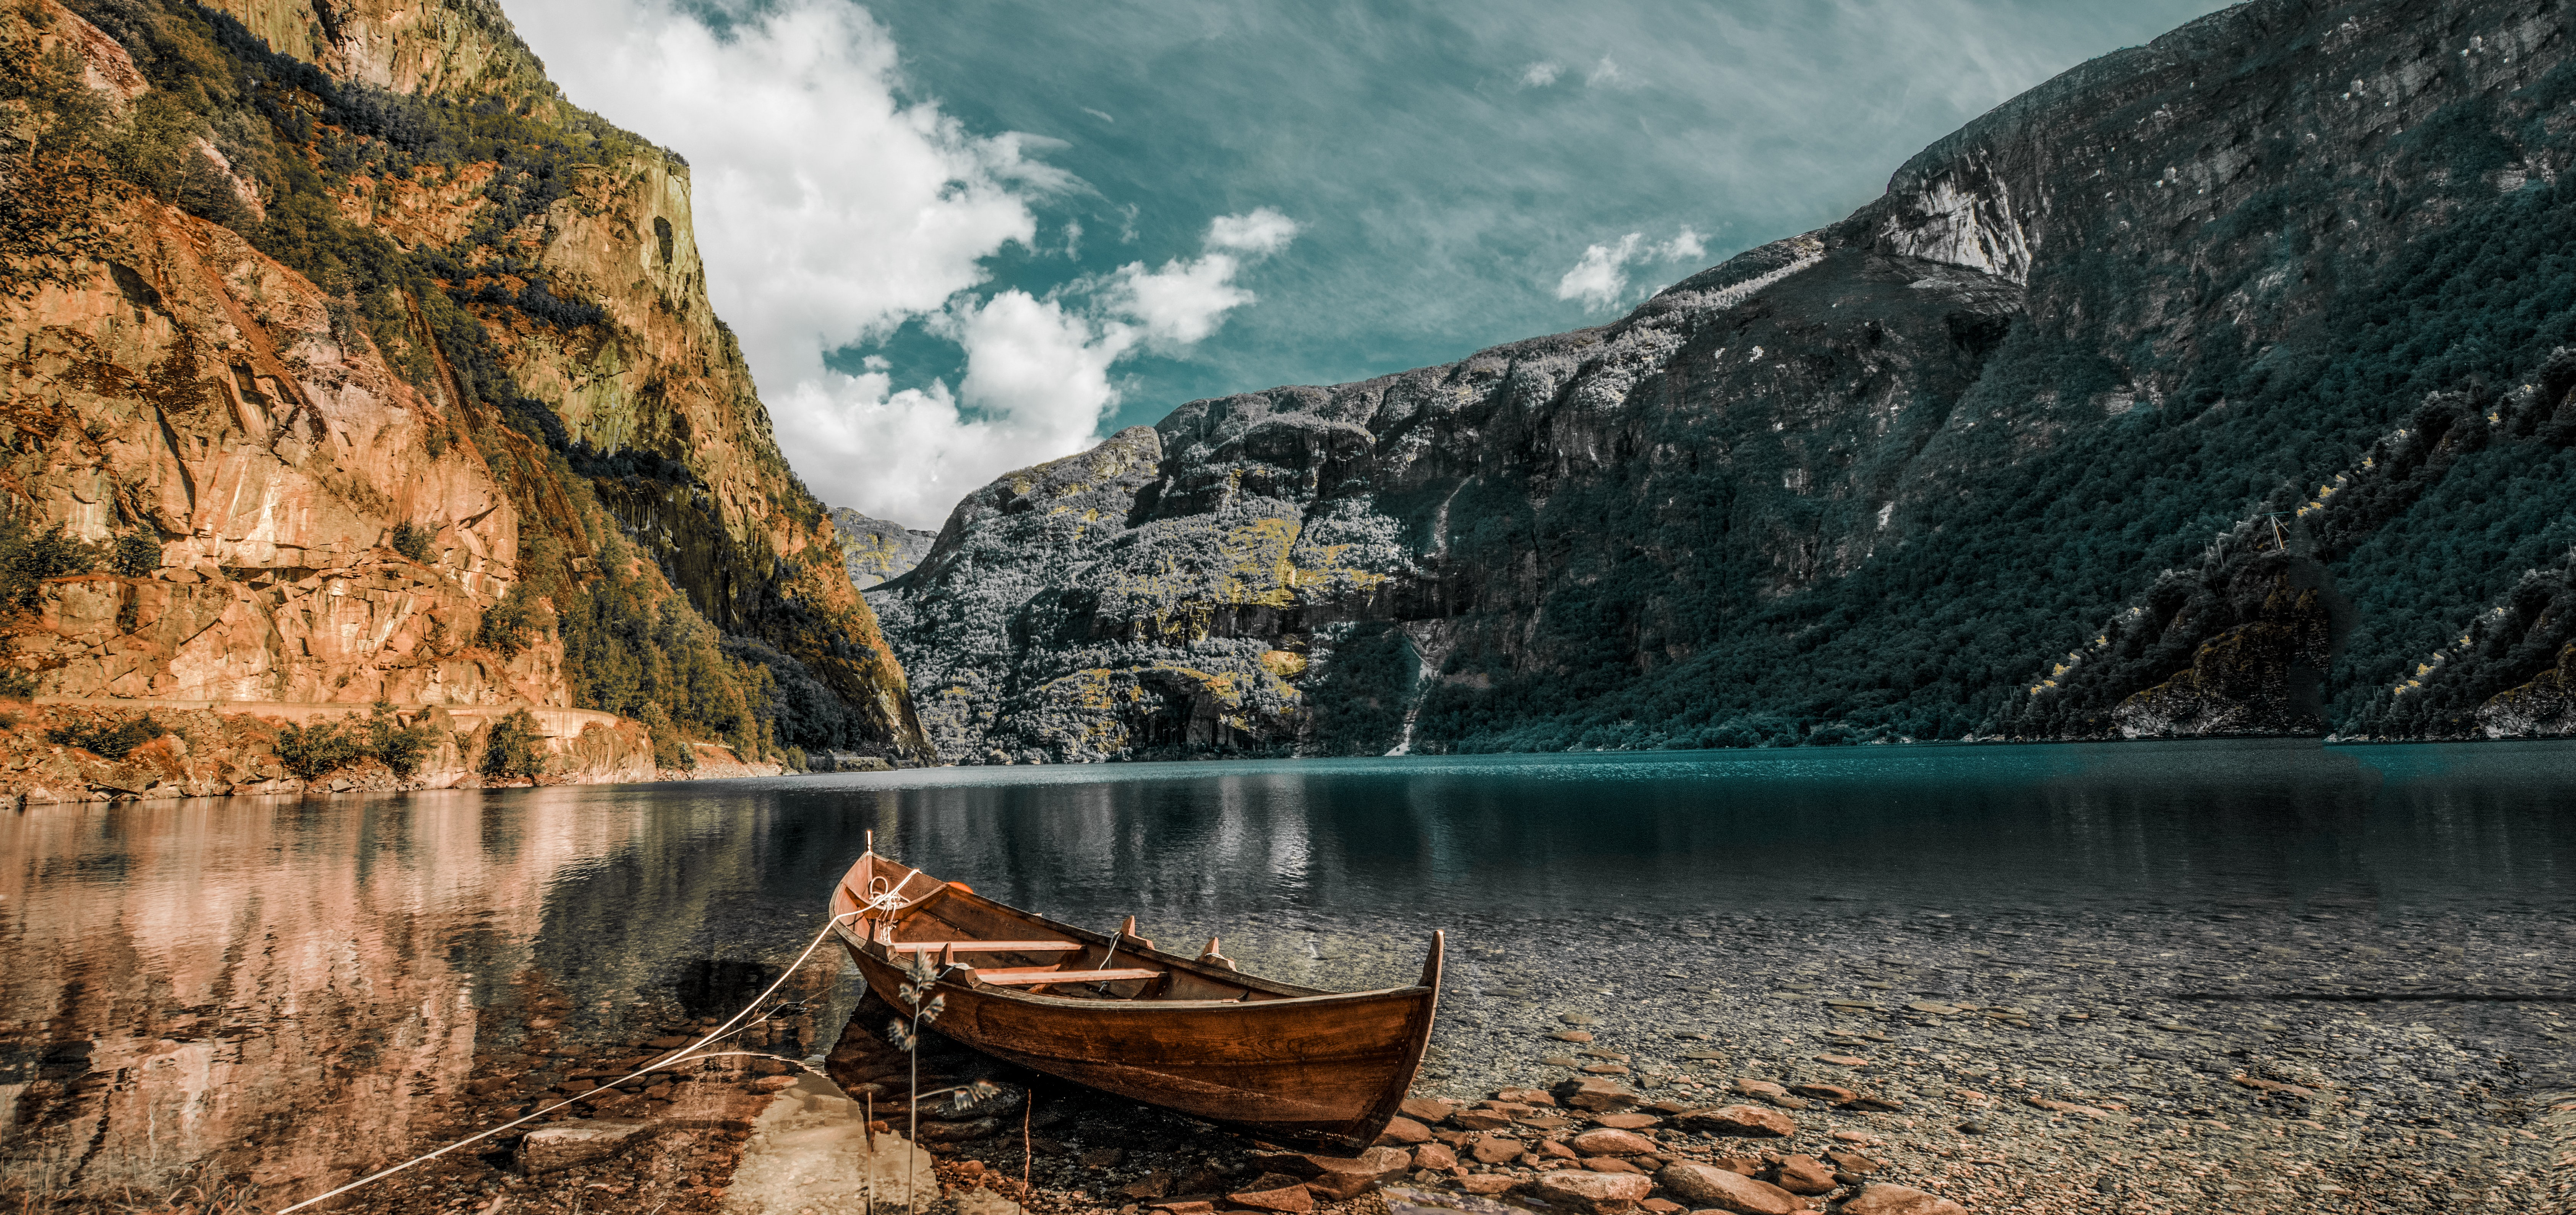 brown wooden canoe next to river and mountains